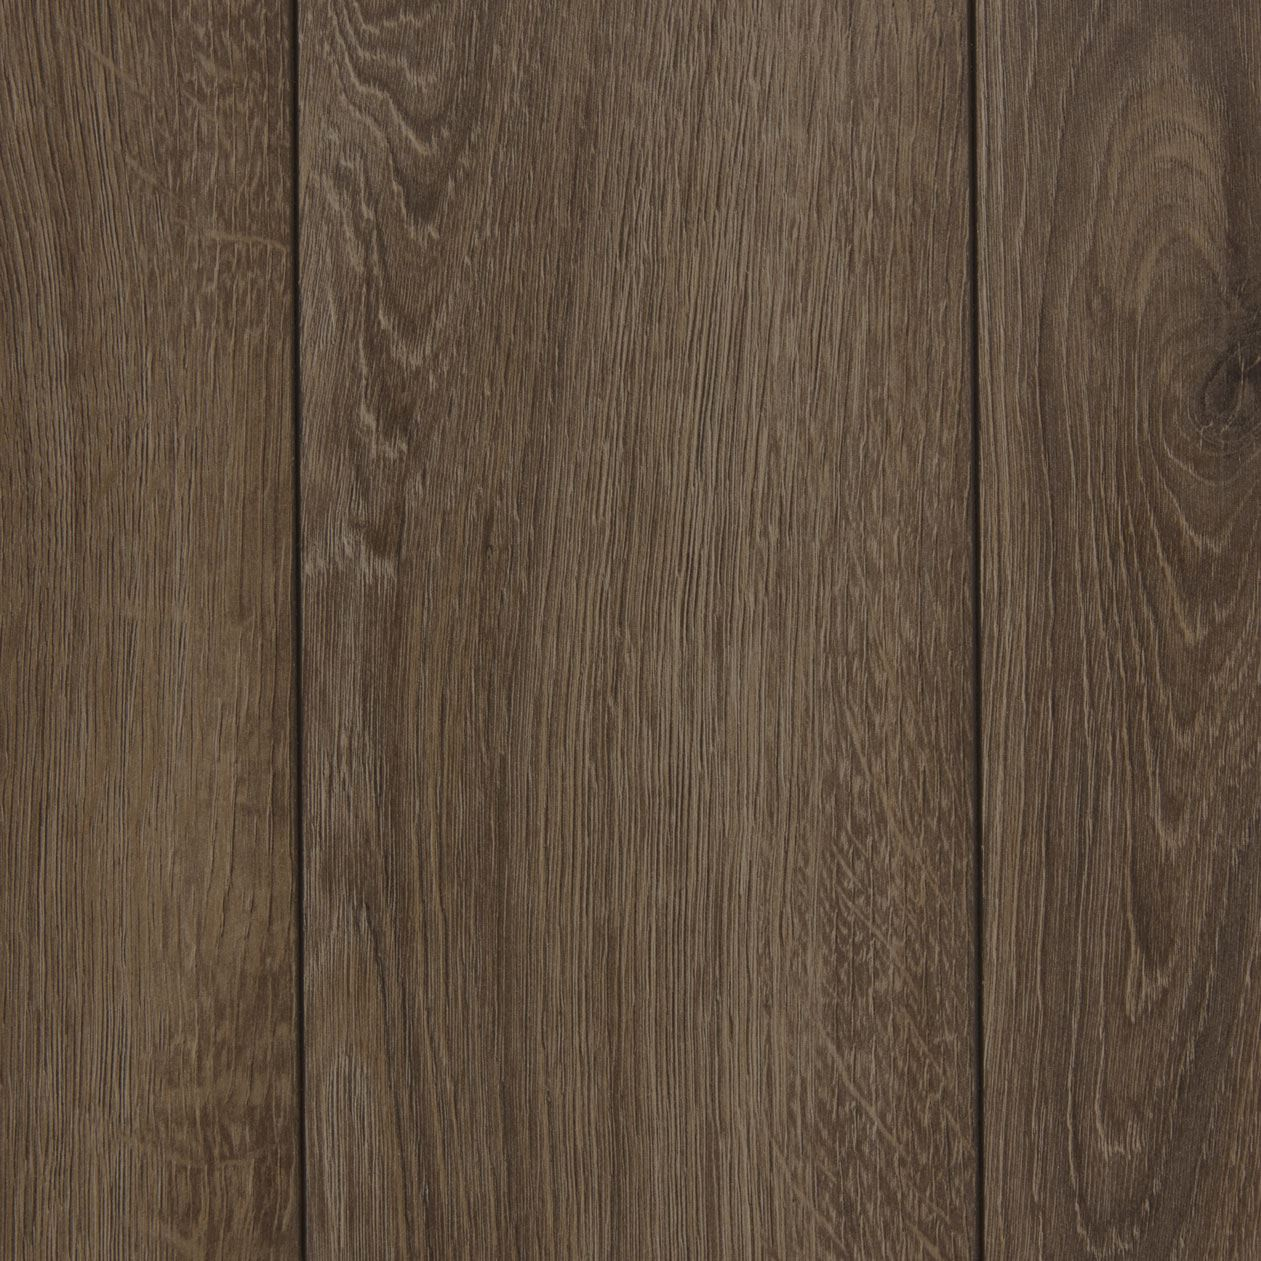 Seneca Wood Laminate Flooring